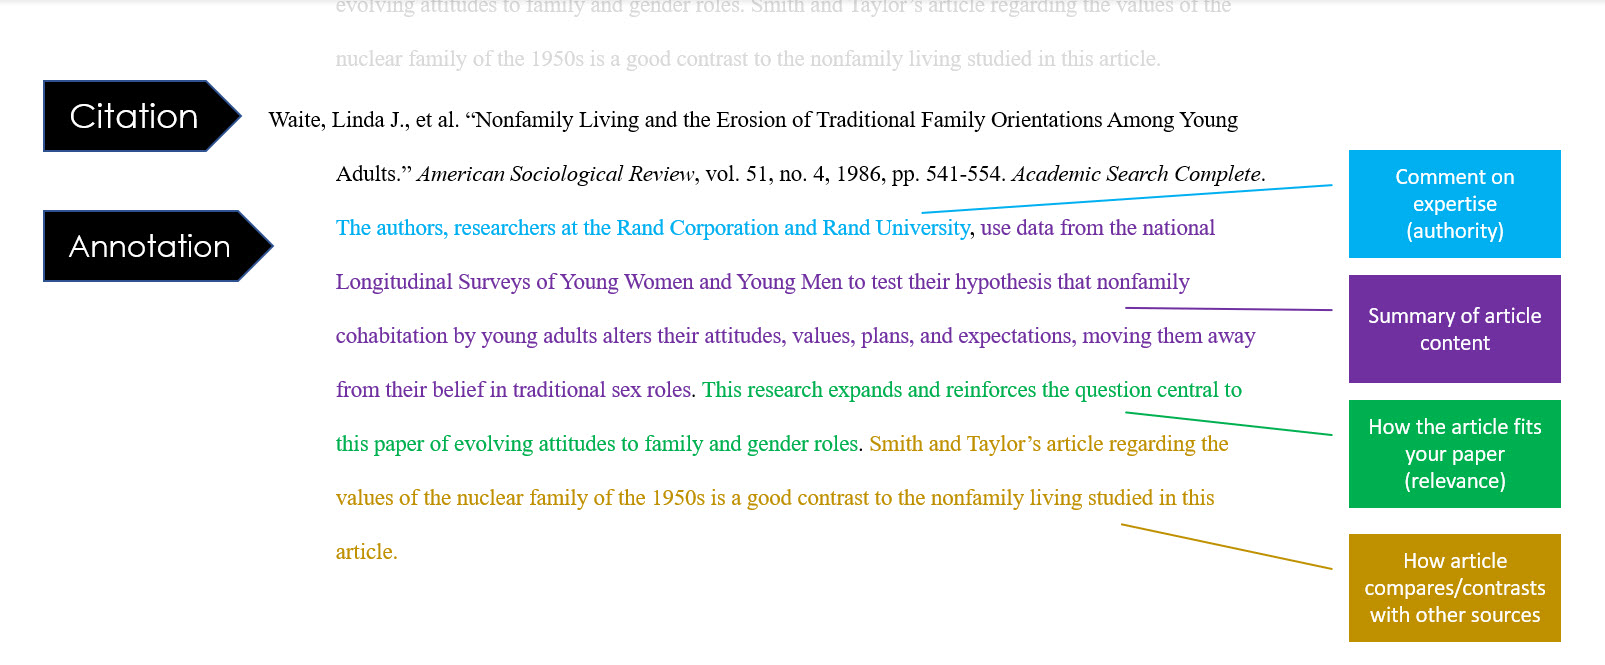 Example MLA citation and annotation. The annotation reads: The authors, researchers at the Rand Corporation and Rand University (comment on authority/expertise), use data from the national Longitudinal Surveys of Young Women and Young Men to test their hypothesis that nonfamily cohabitation by young adults alters their attitudes, values, plans, and expectations, moving them away from their belief in traditional sex roles (summary of article content). This research expands and reinforces the question central to this paper of evolving attitudes to family and gender roles (relevance to your paper). Smith and Taylor's article regarding the values of the nuclear family of the 1950s is a good contrast to the nonfamily living studied in this article. (supports research)